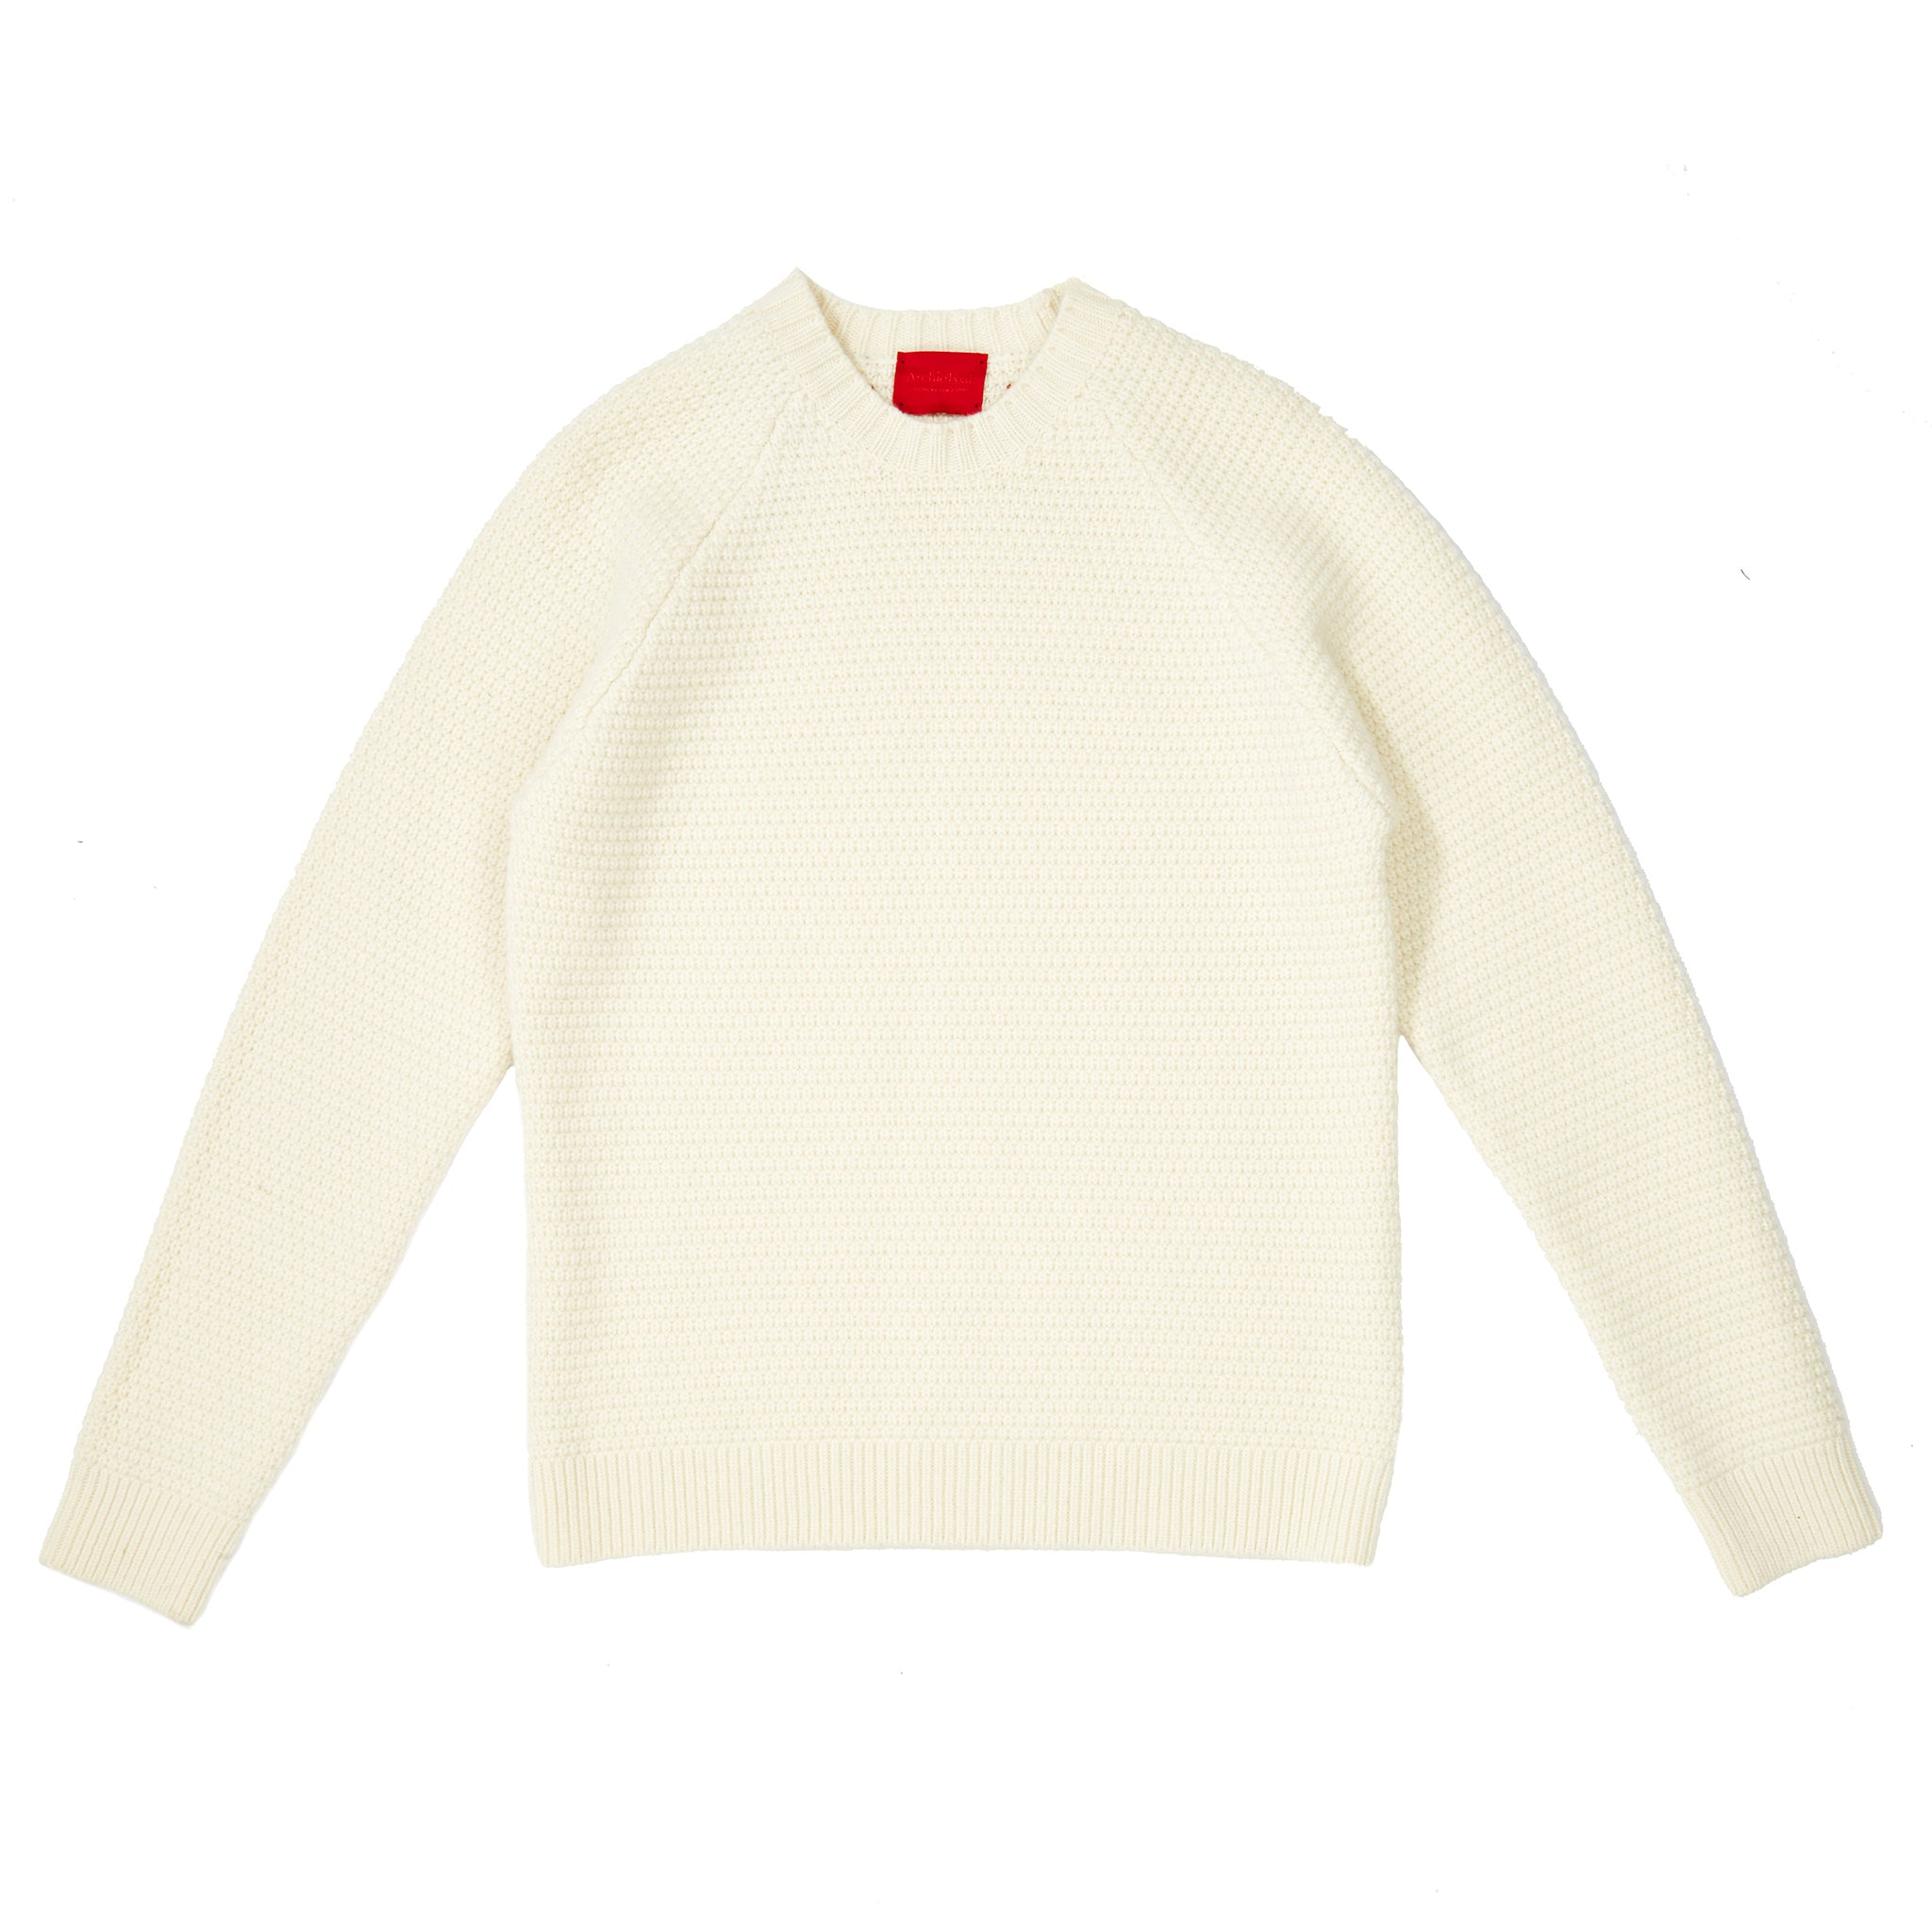 ARCHIE FOAL MEN'S COLM SWEATER IN CREAM